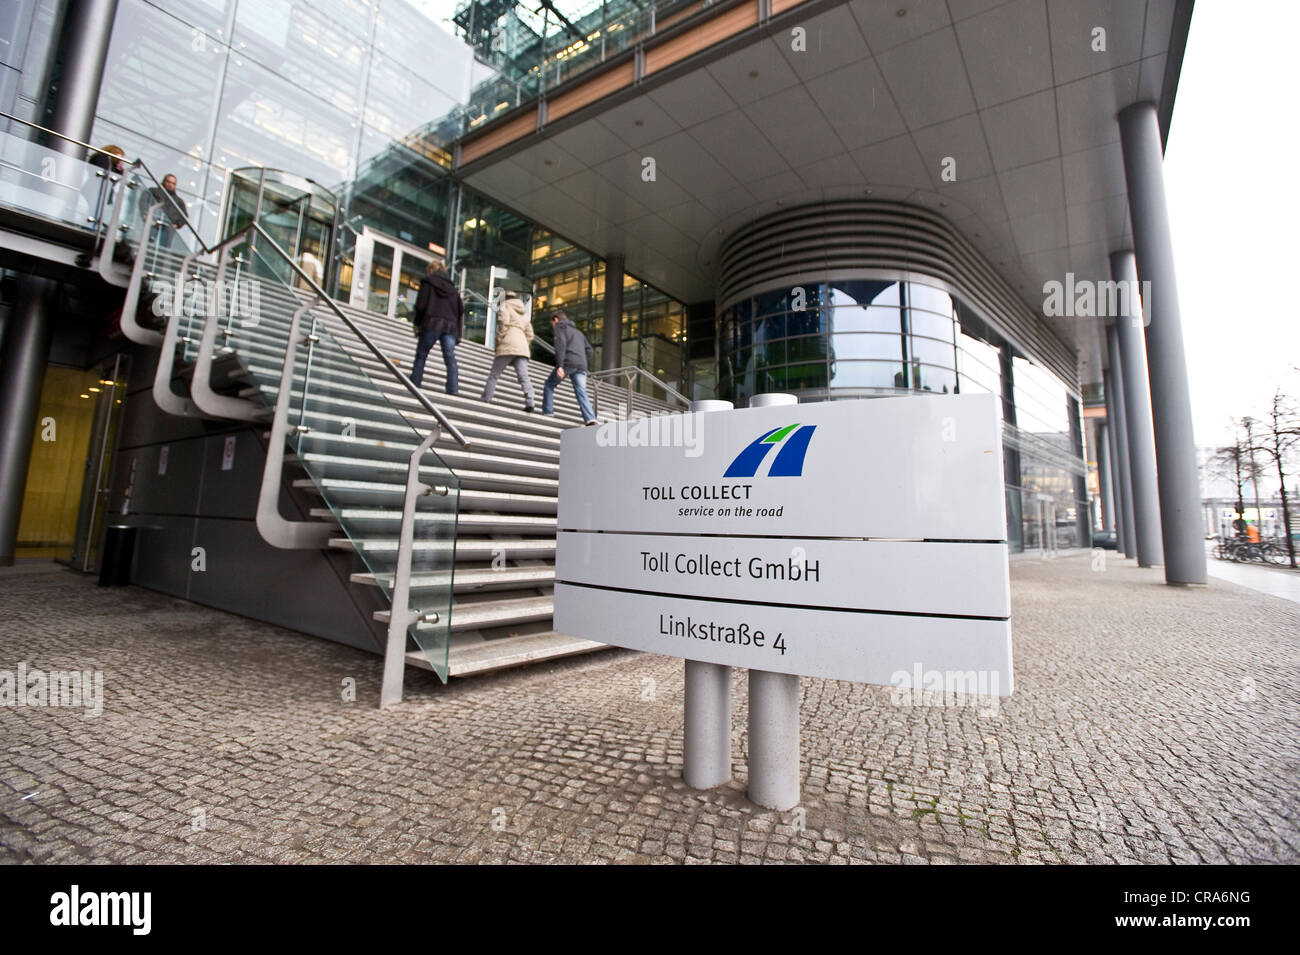 Toll Collect GmbH headquarters, Berlin, Germany, Europe - Stock Image